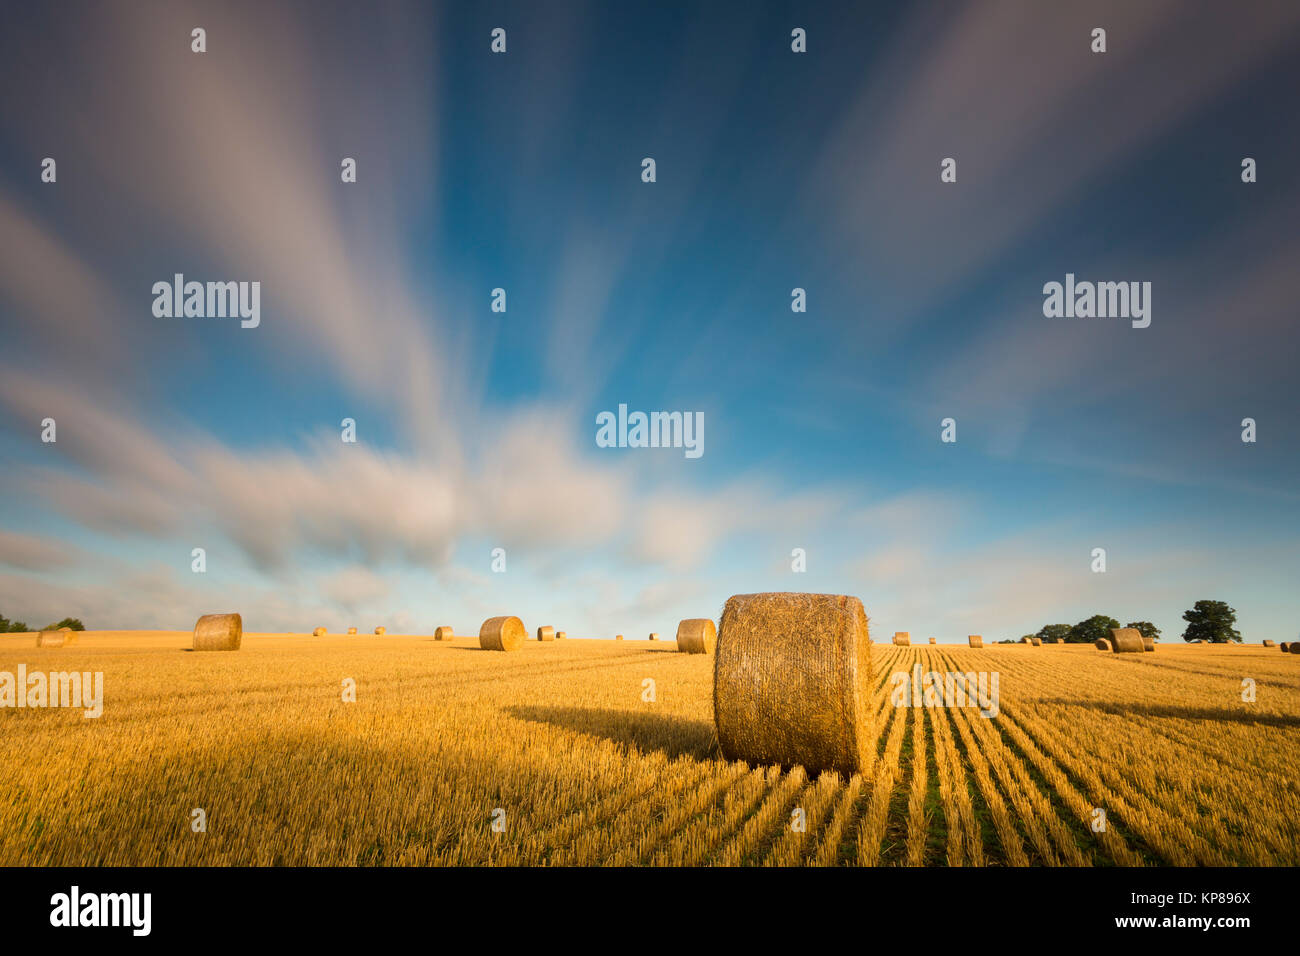 drawing clouds on field with straw bales,long exposure Stock Photo